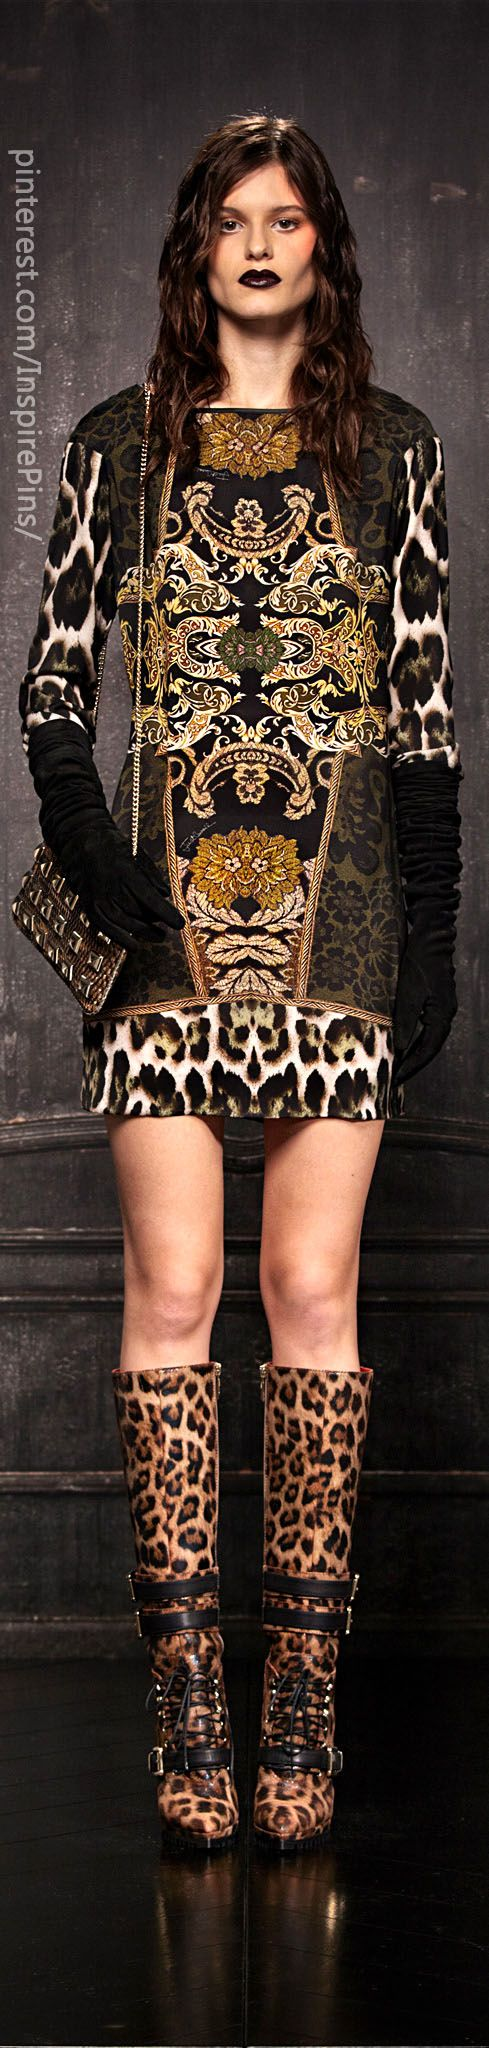 Pre-Fall 2013 Just Cavalli   The House of Beccaria~